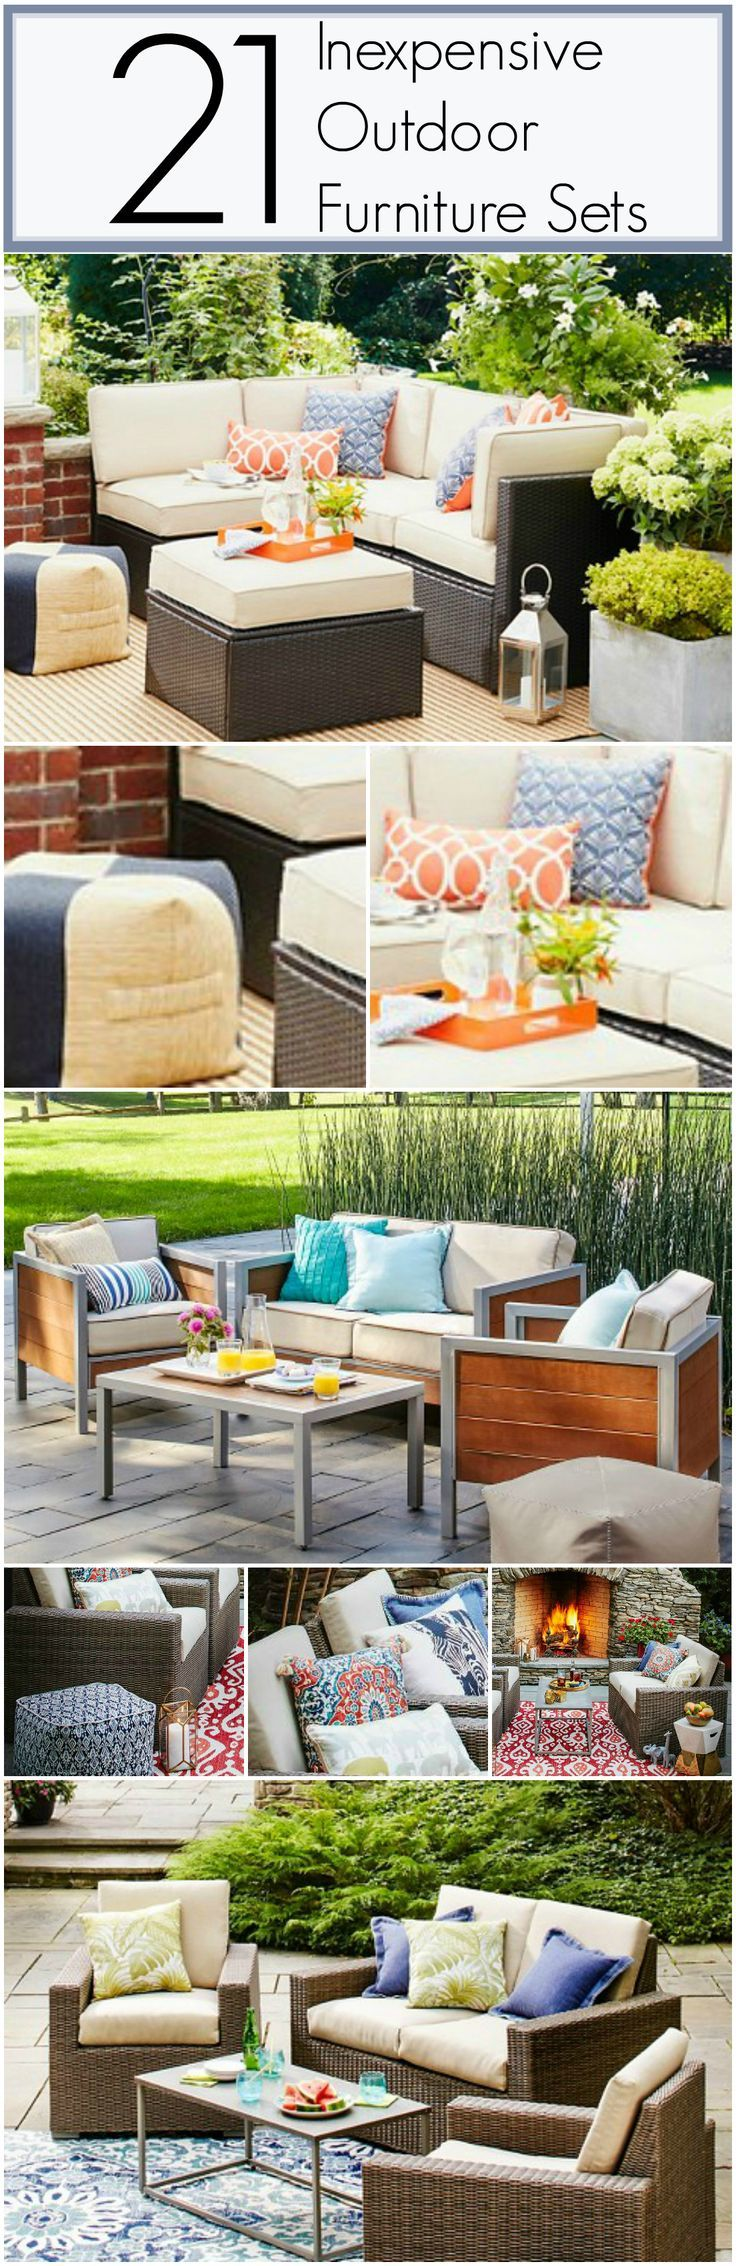 17 Best ideas about Inexpensive Patio Furniture on